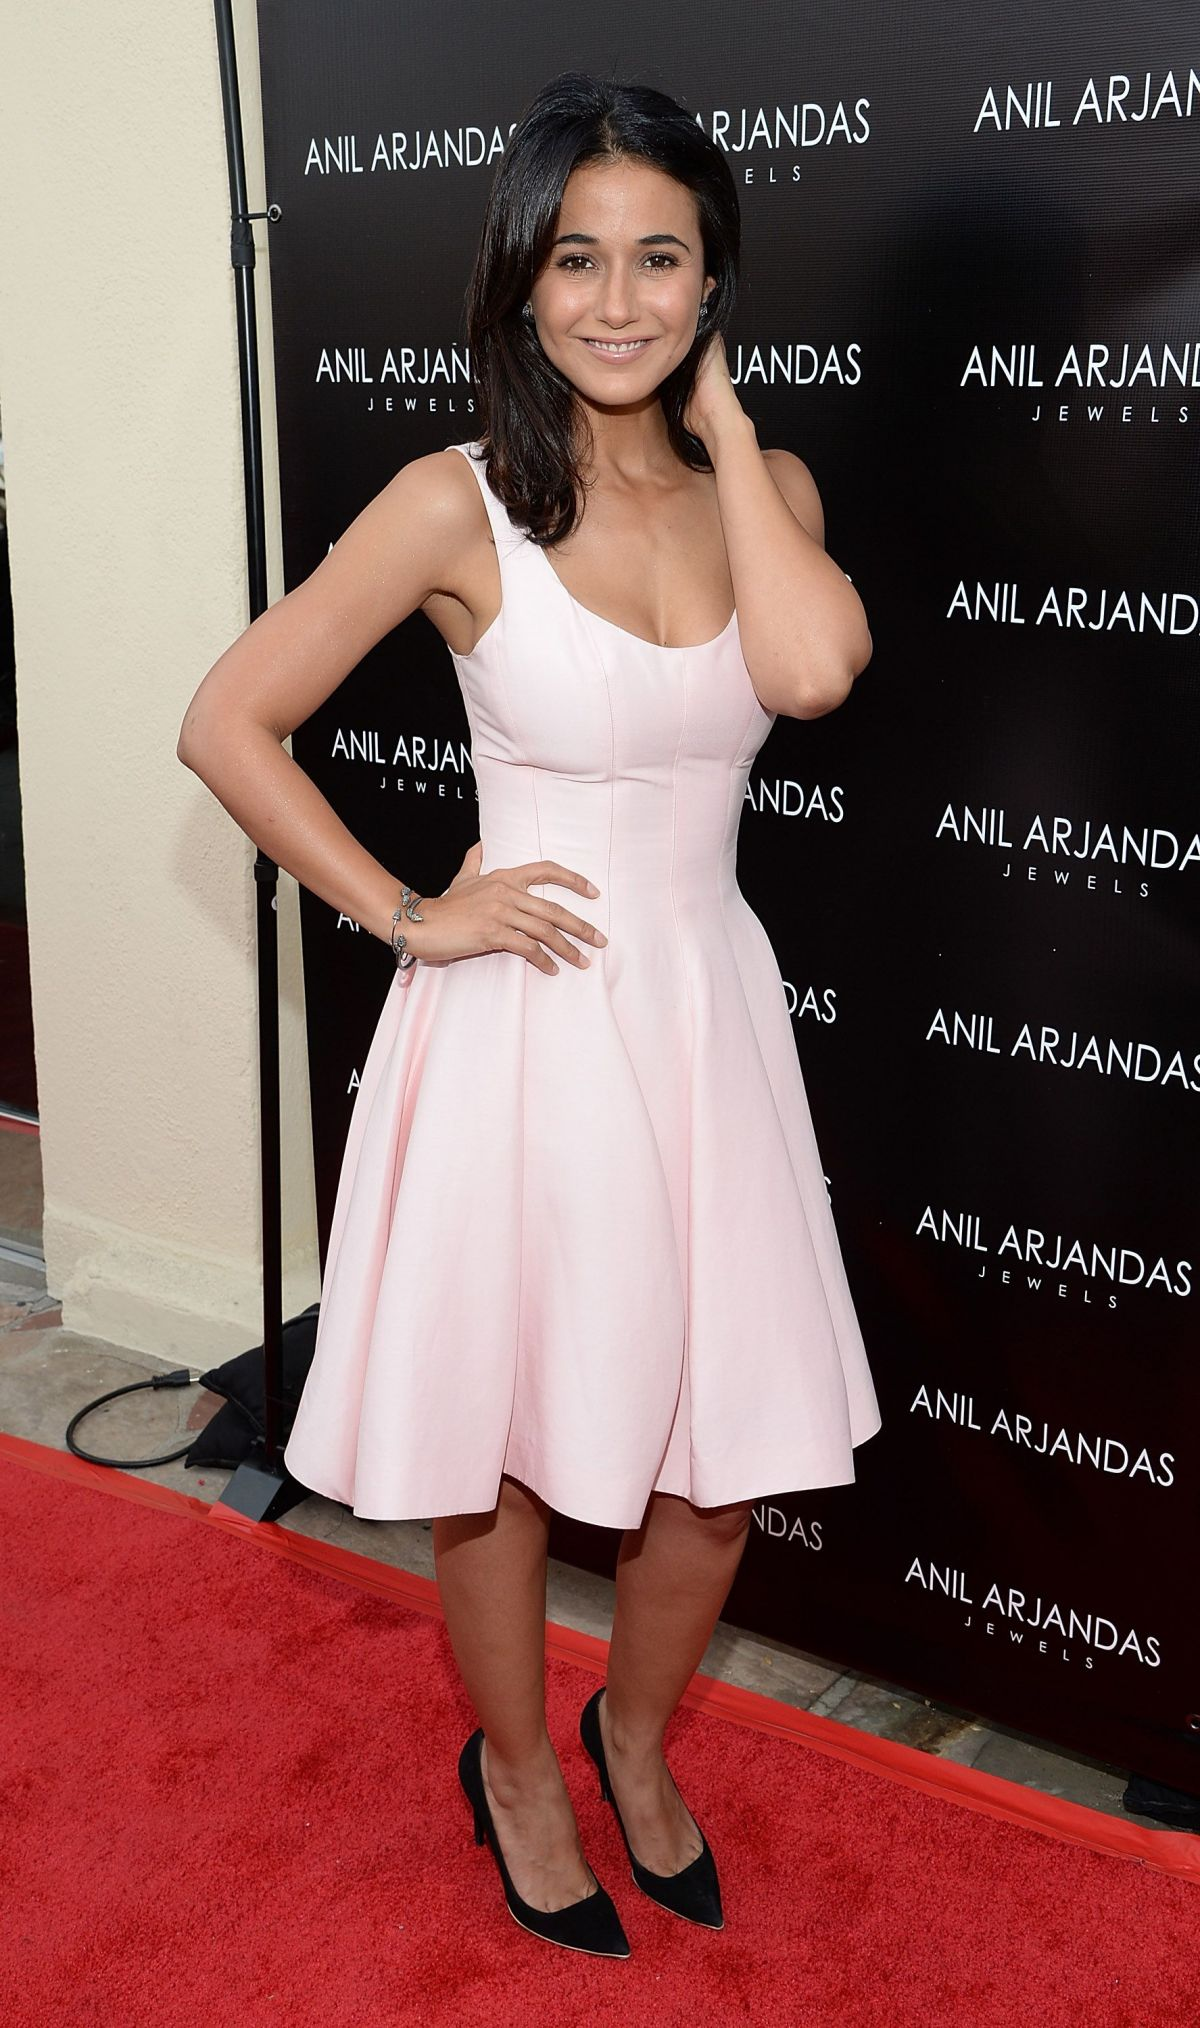 2f29386fe EMMANUELLE CHRIQUI at Anil Arjandas Jewels US Flagship Store Opening in  West Hollywood